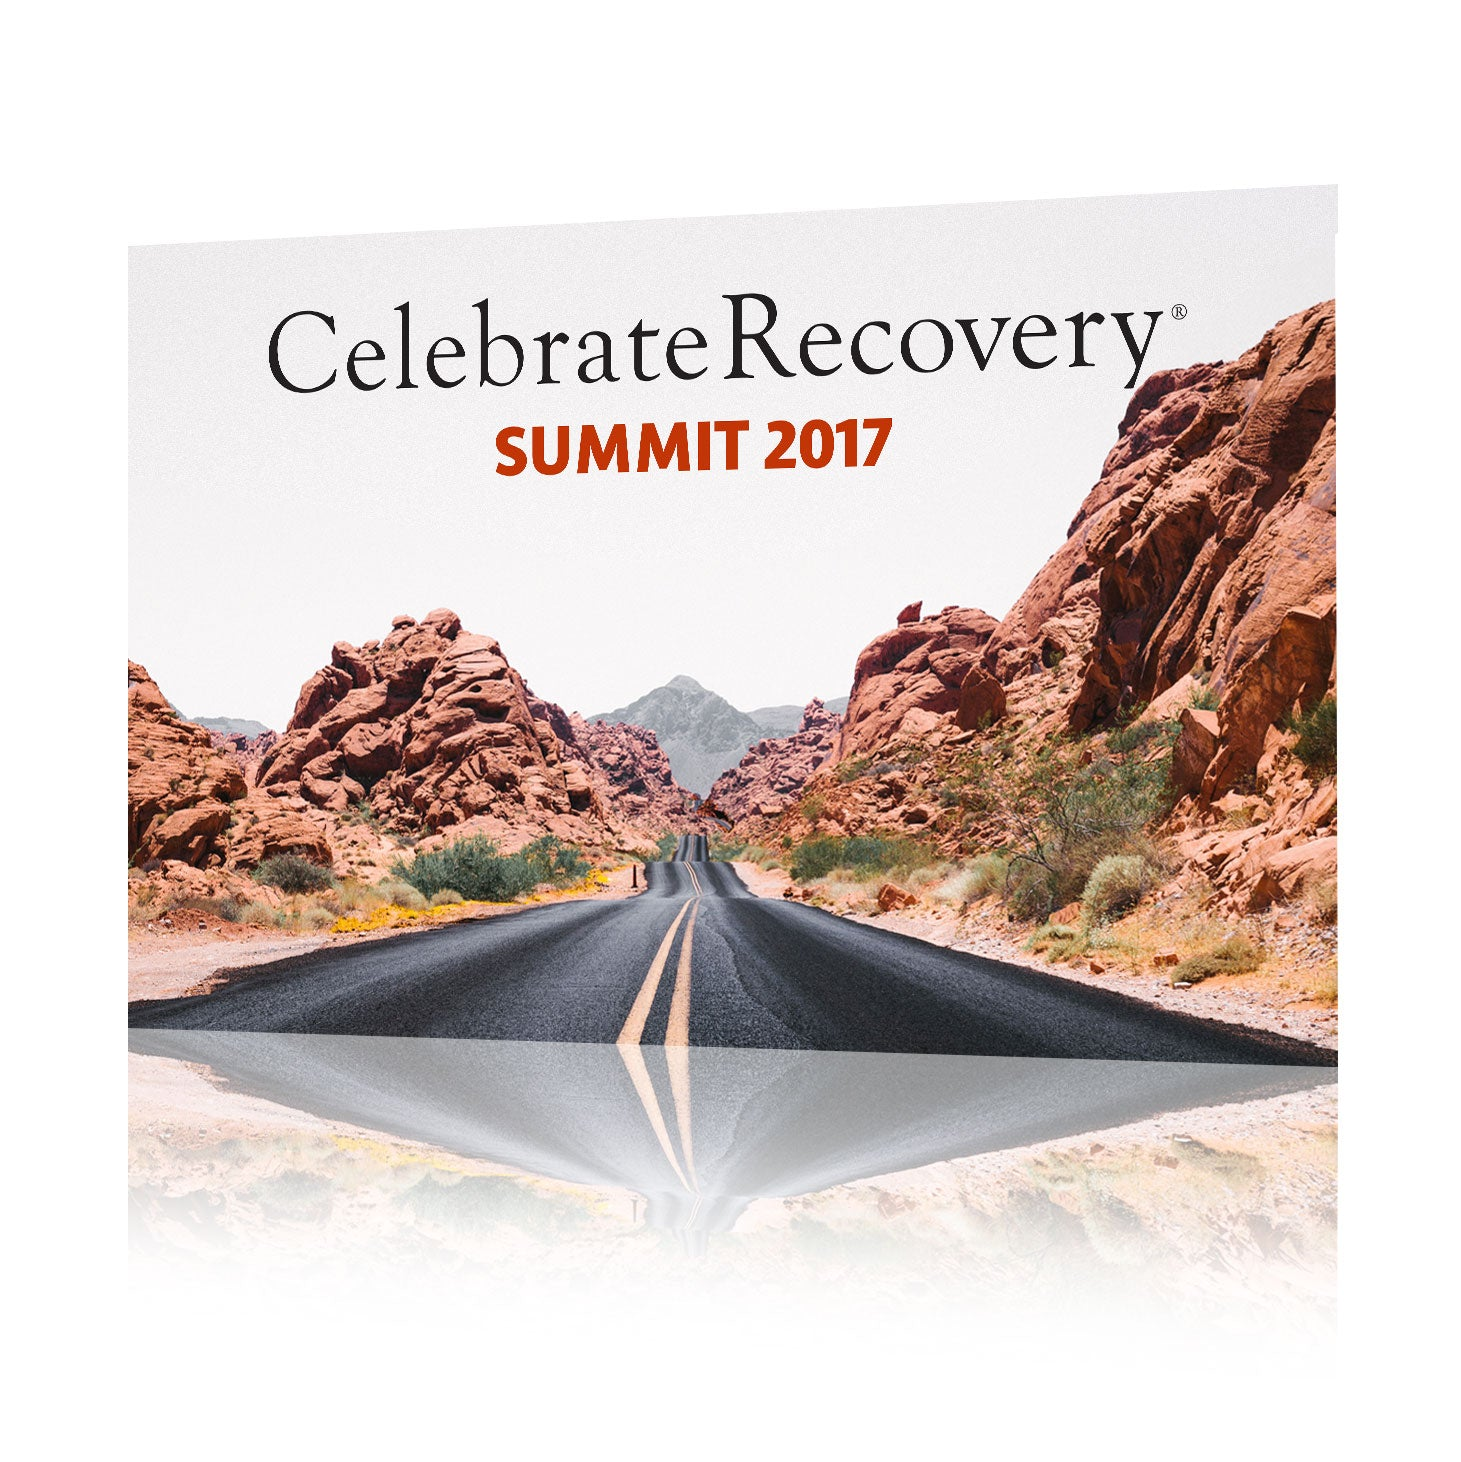 2017 Celebrate Recovery Summit: The Journey Continues & The Opioid Epidemic